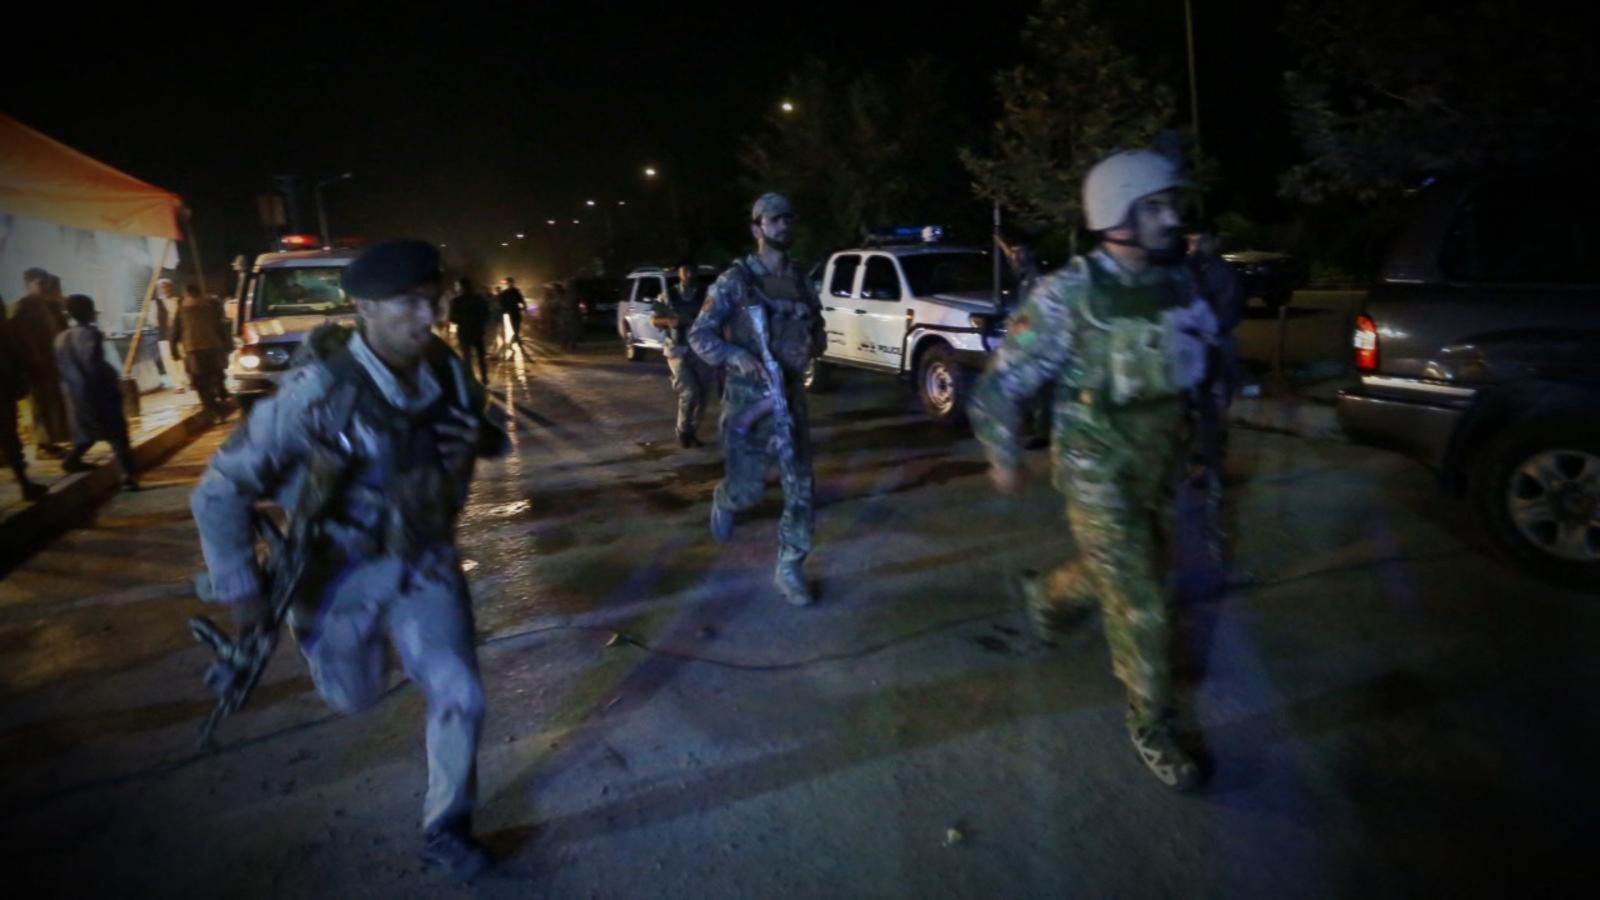 VIDEO: American University in Kabul Attacked by Gunmen